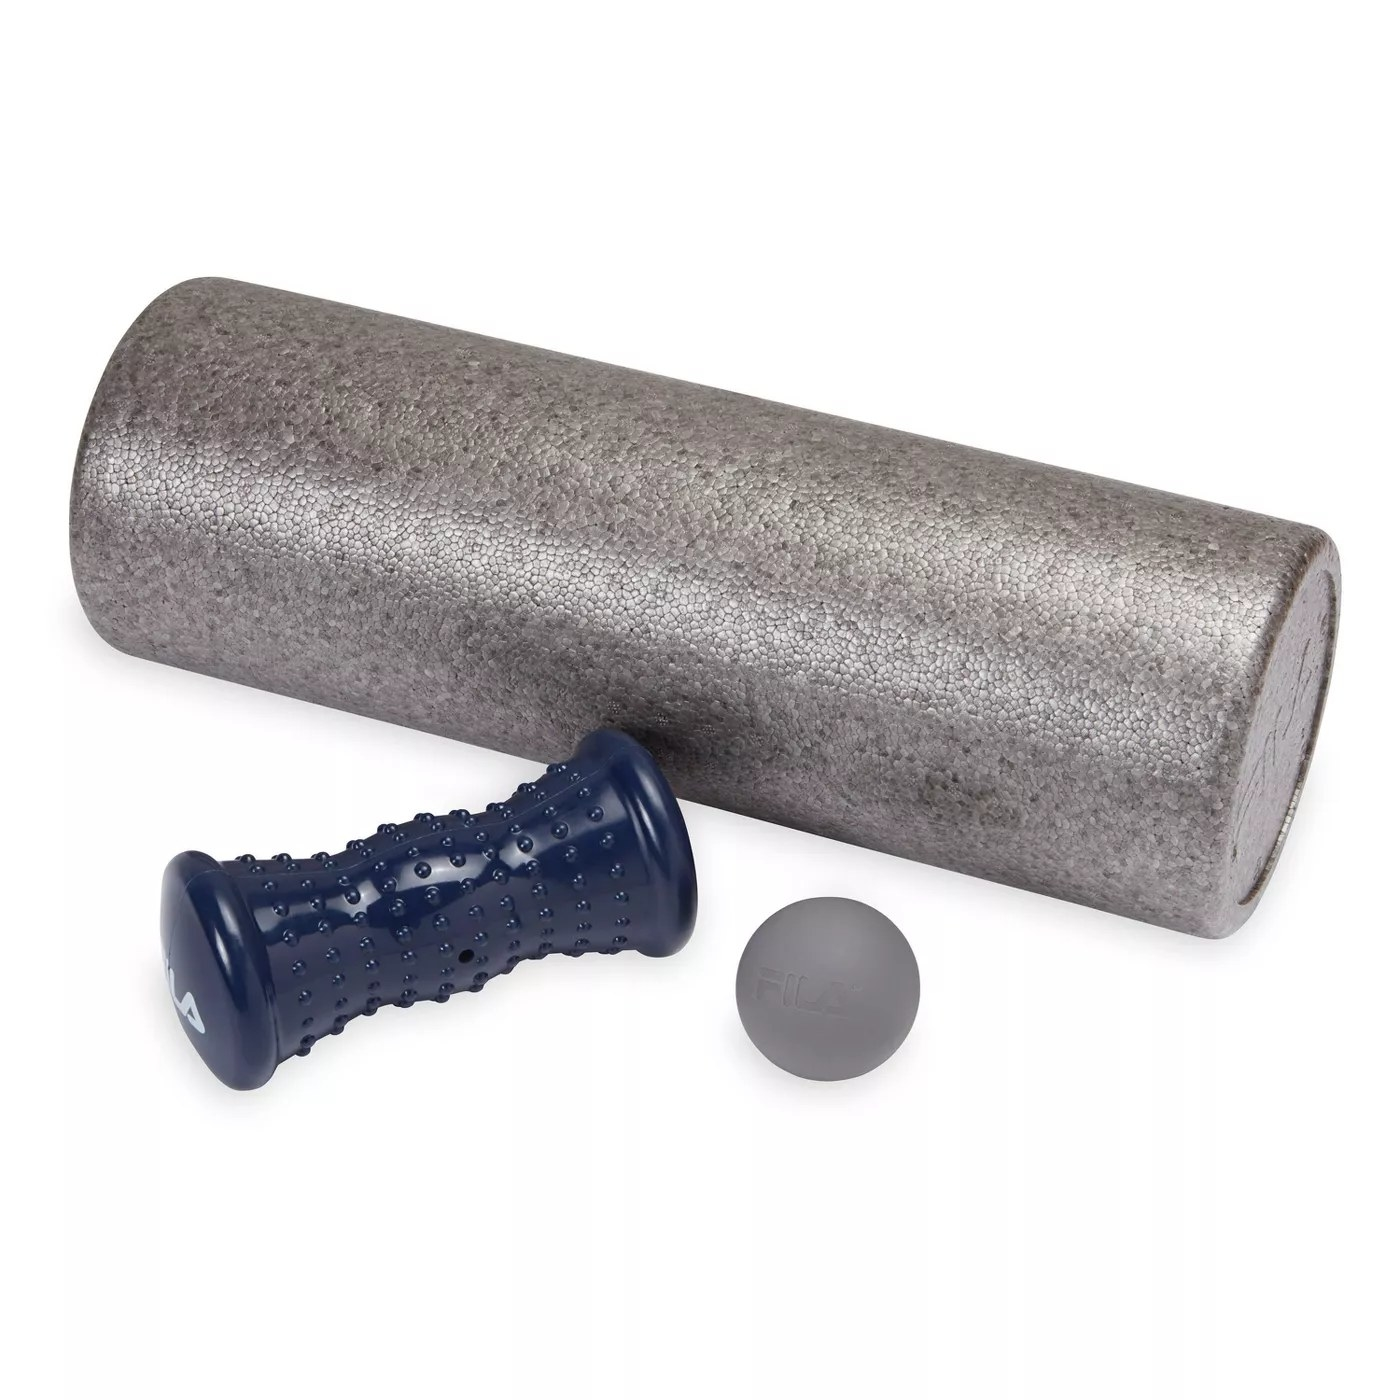 A foam roller, an all-purpose massager, and a rubber ball